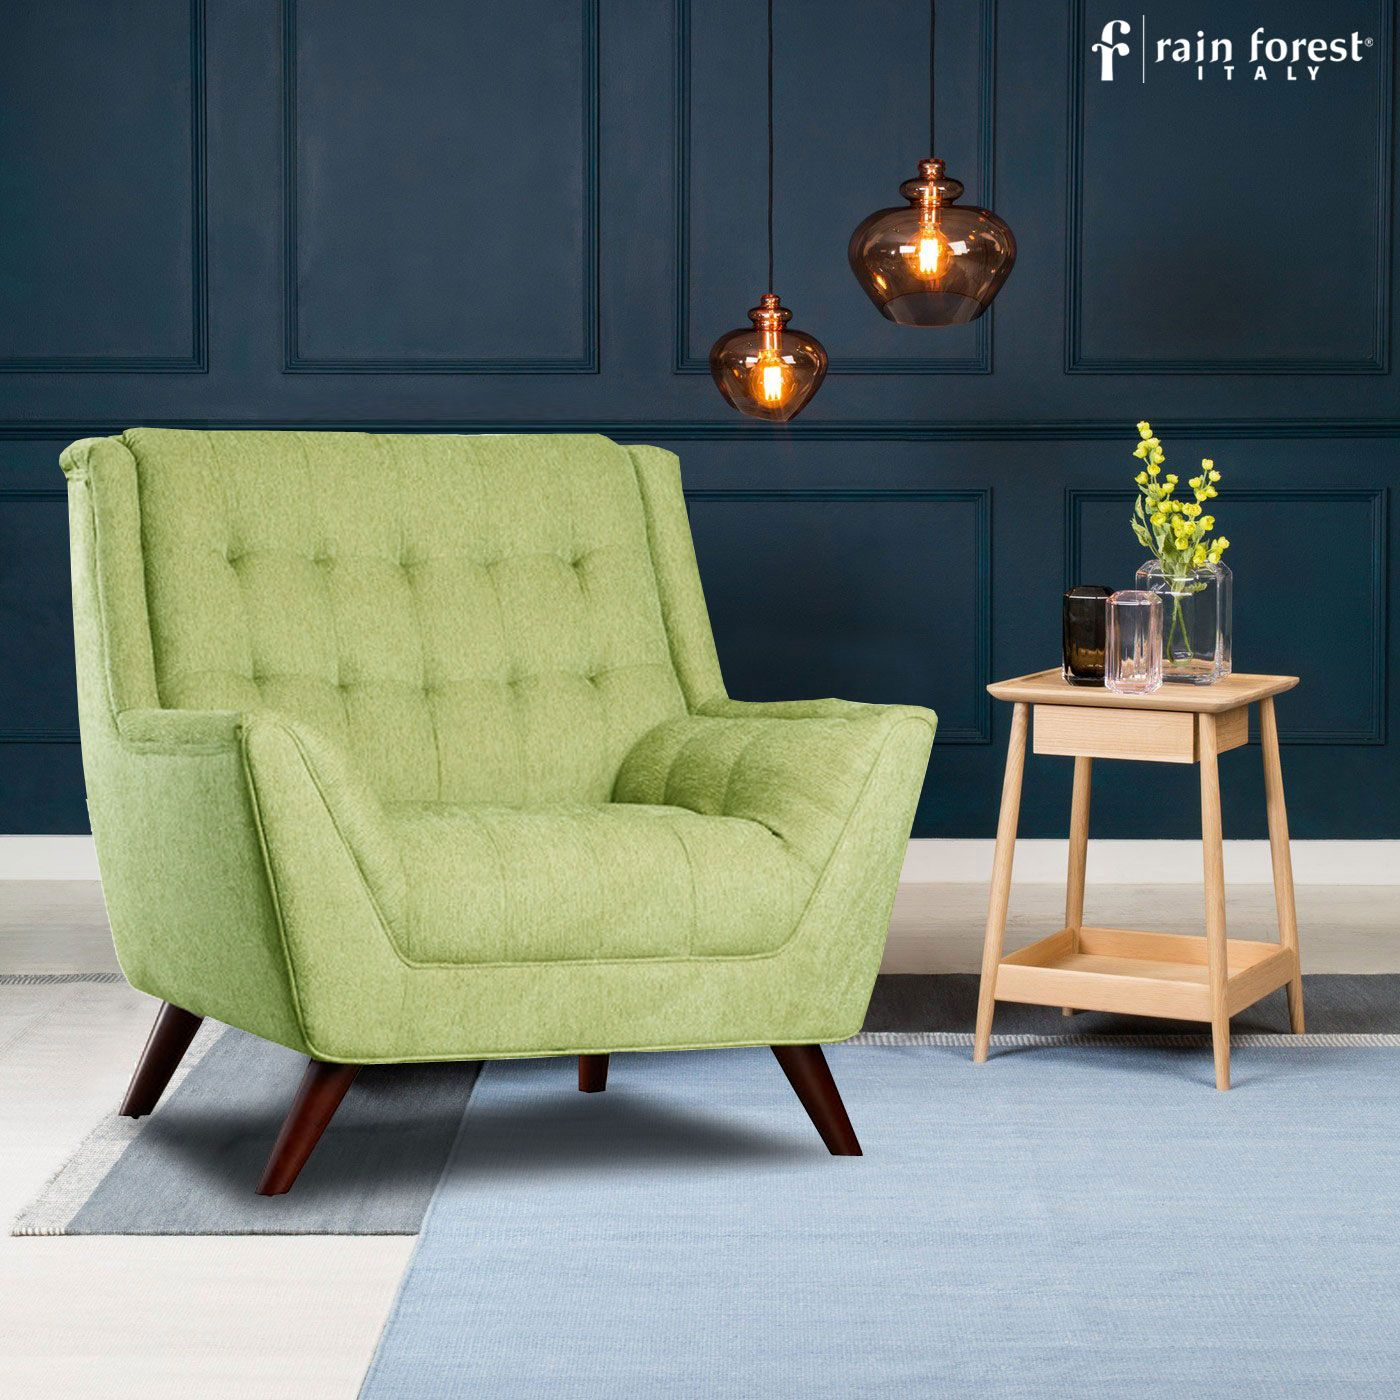 Revamp Your Home With Beautiful Chair Designer Chair